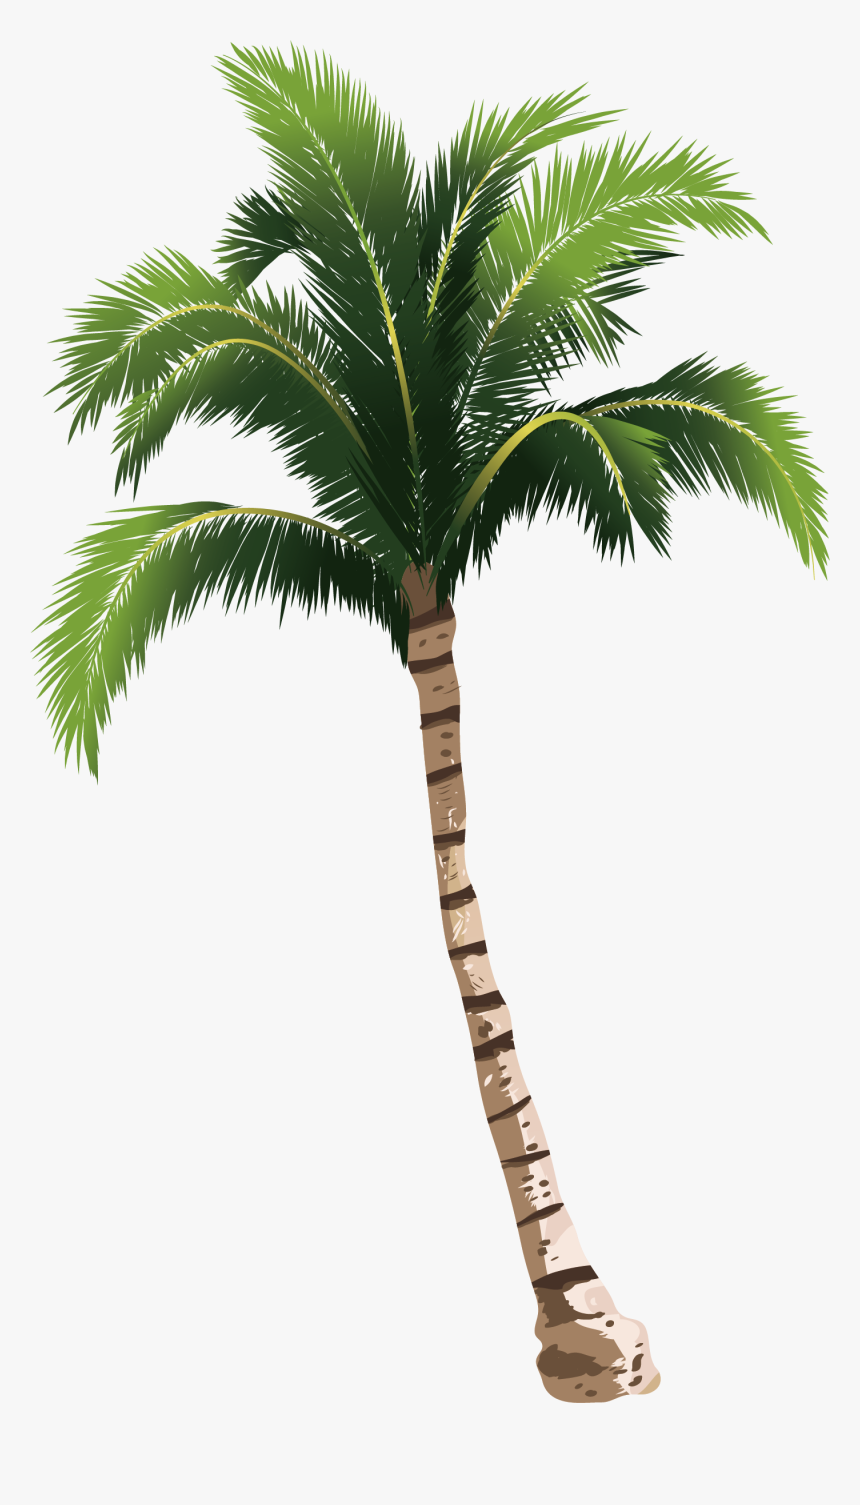 Coconut Tree Hq Image Free Png Clipart - Coconut Tree Png Free, Transparent Png, Free Download